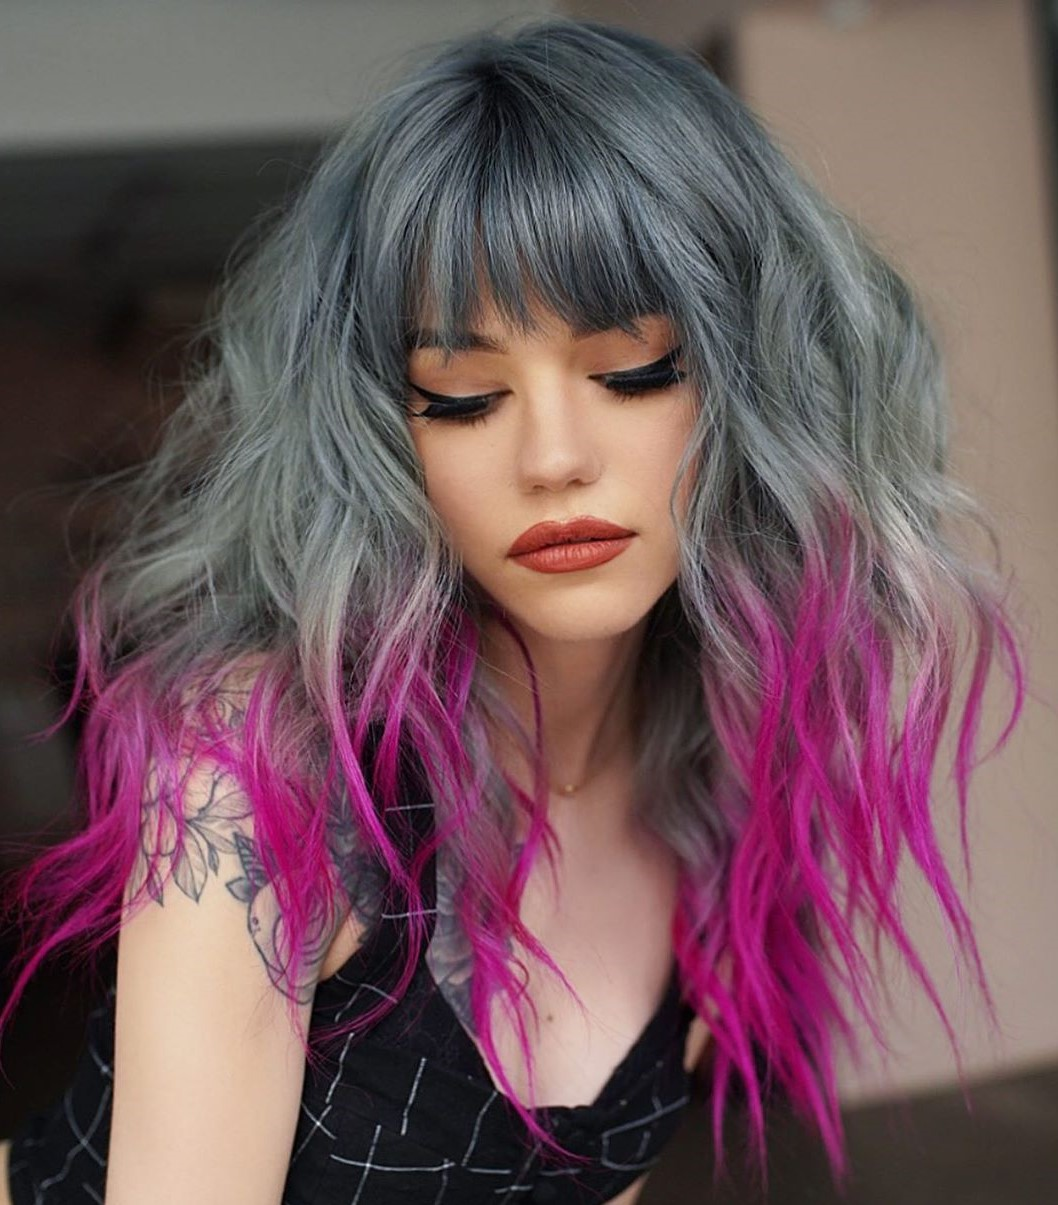 Fun Bright Pink Dip Dye Hairstyle